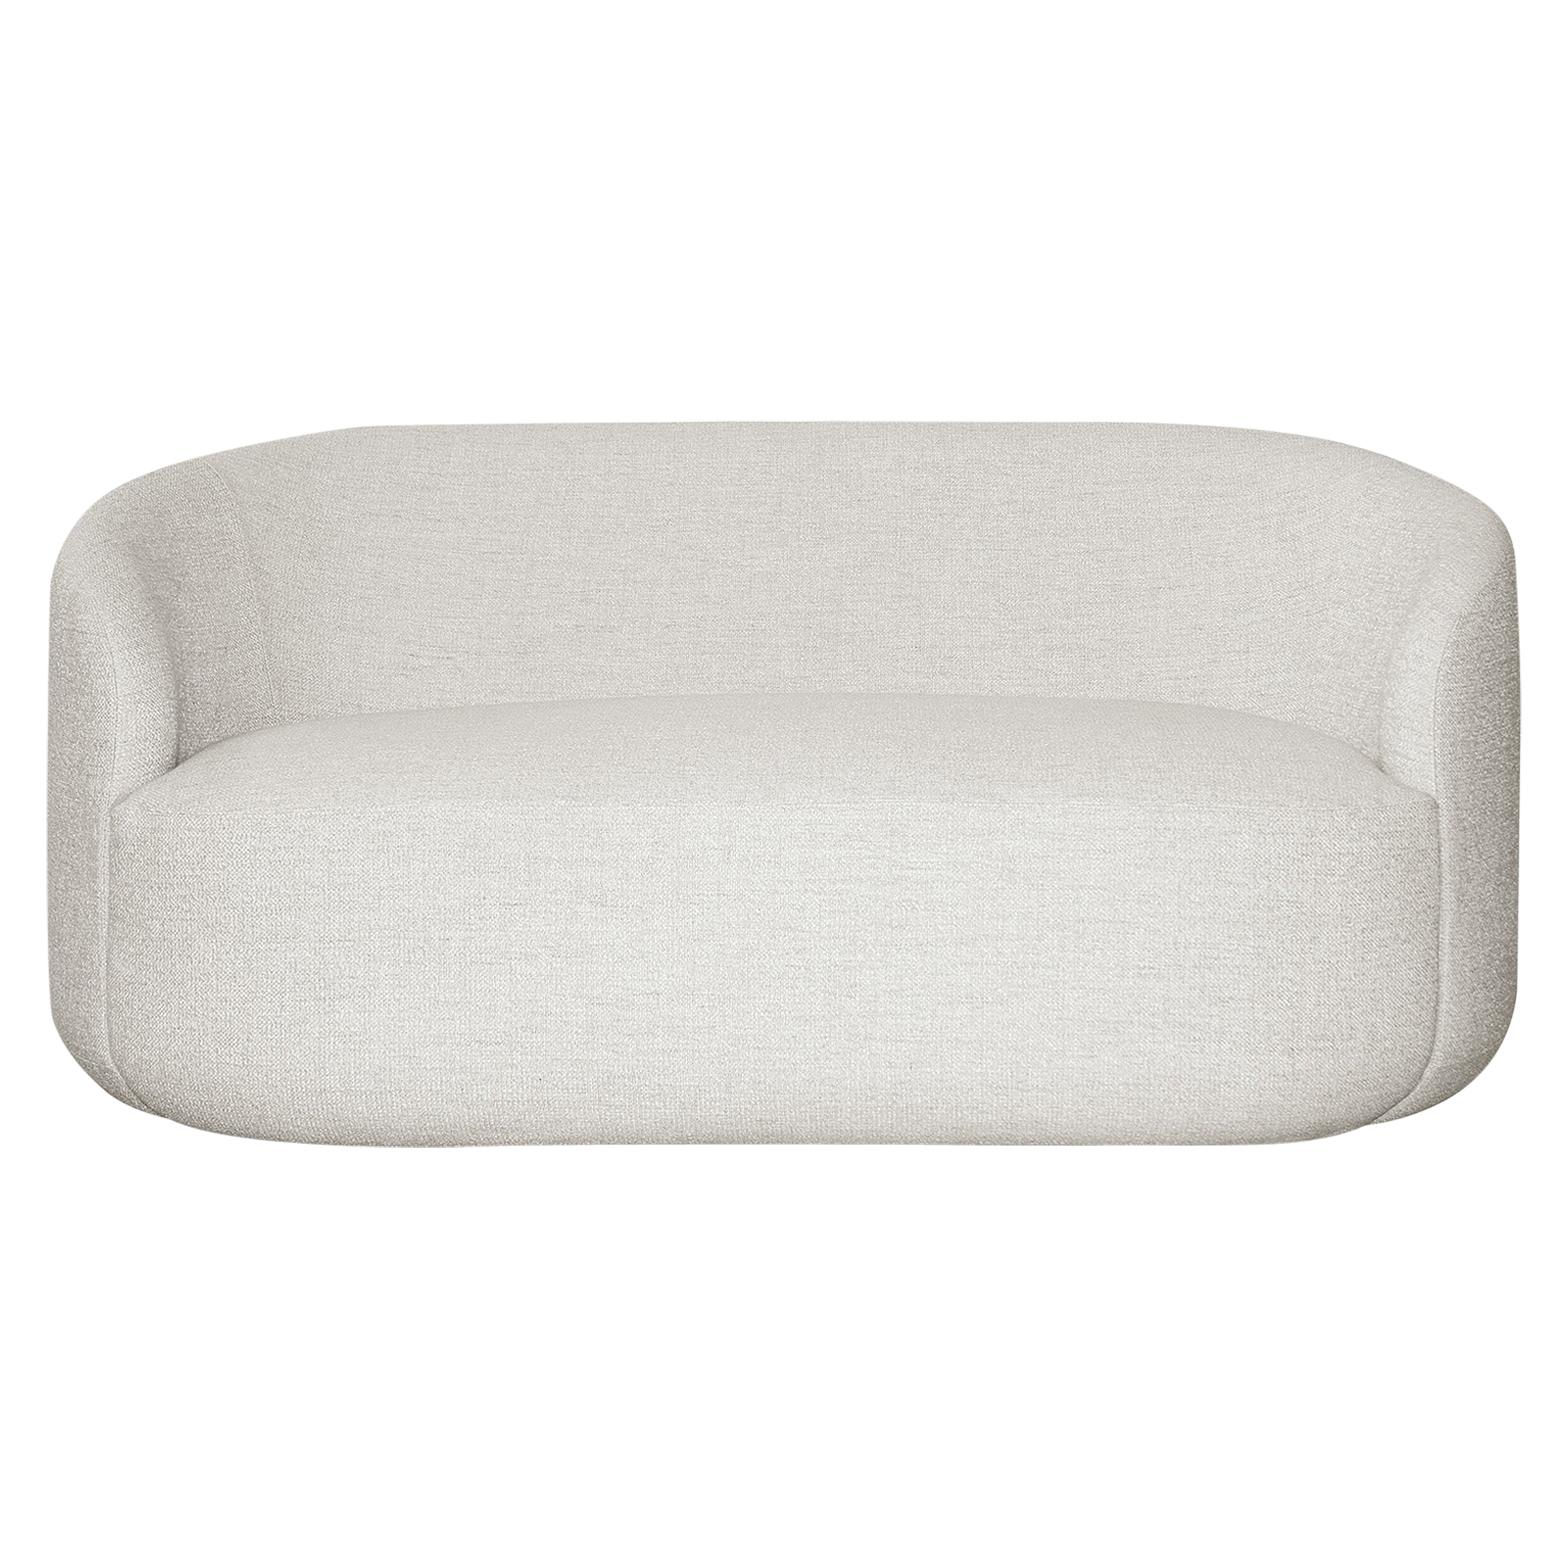 Beau Curved Sofa U0027Cottonfloweru0027 In White Fabric By KABINET